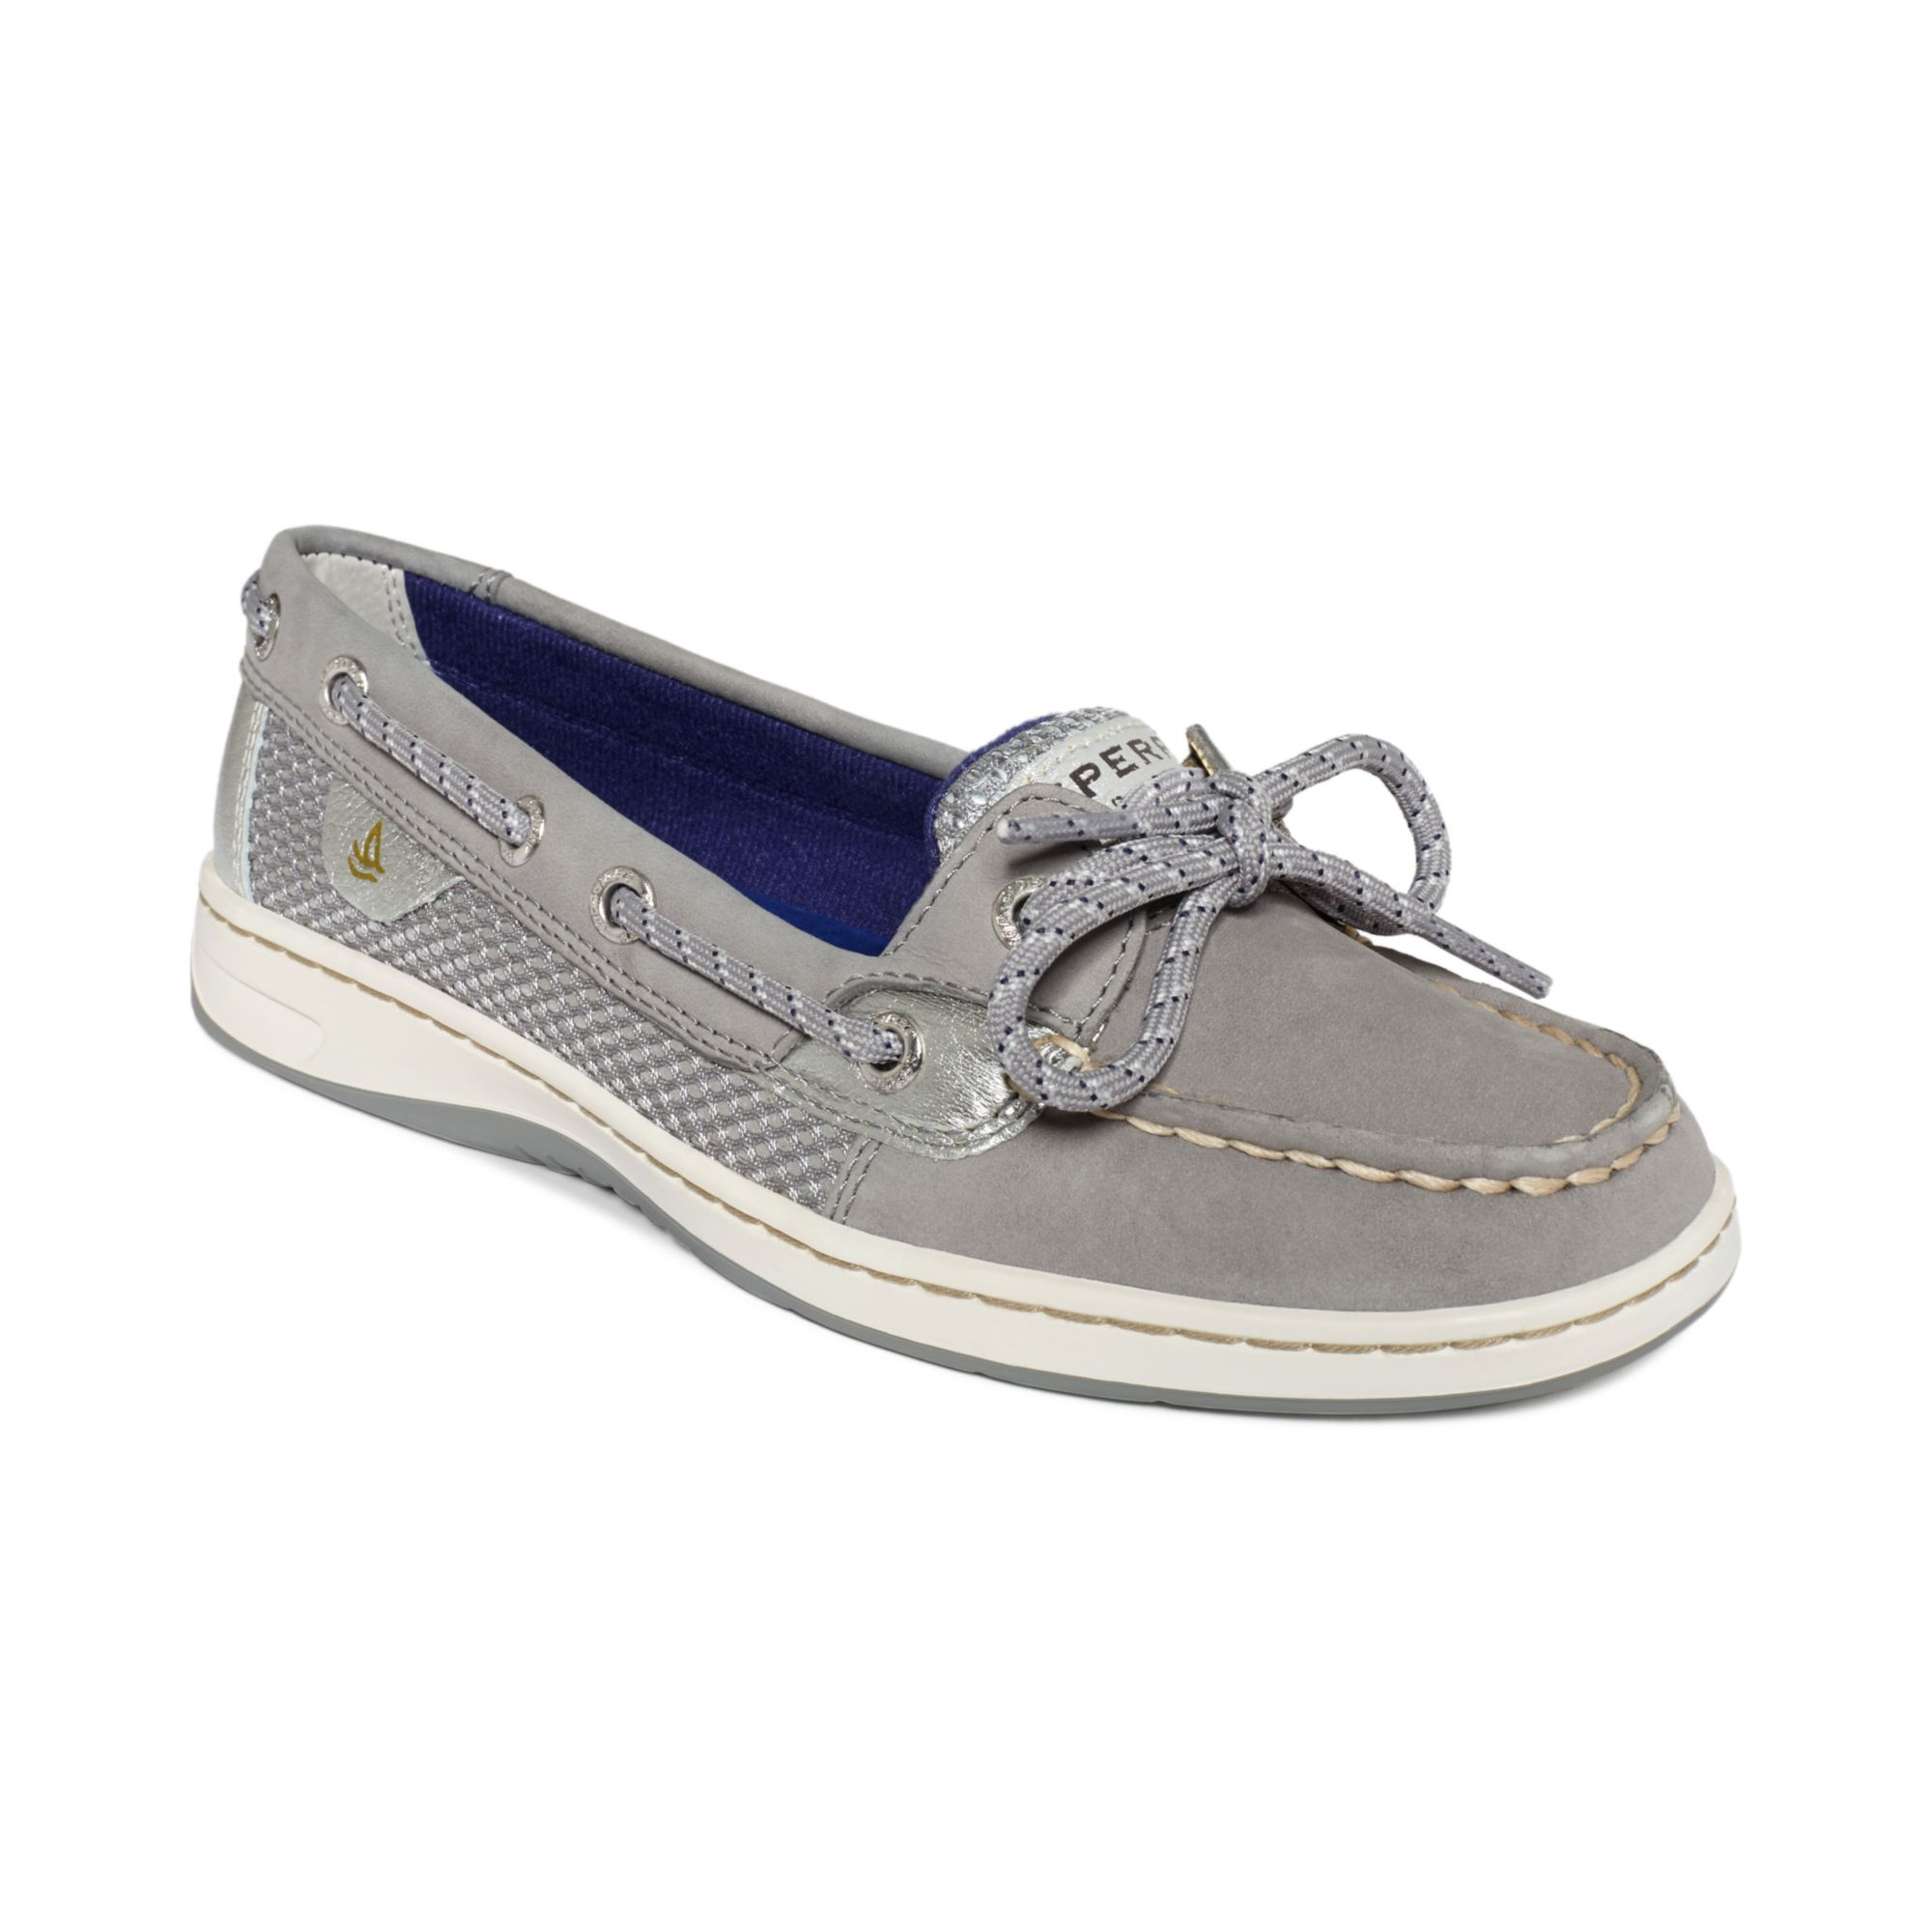 Lyst - Sperry Top-Side...